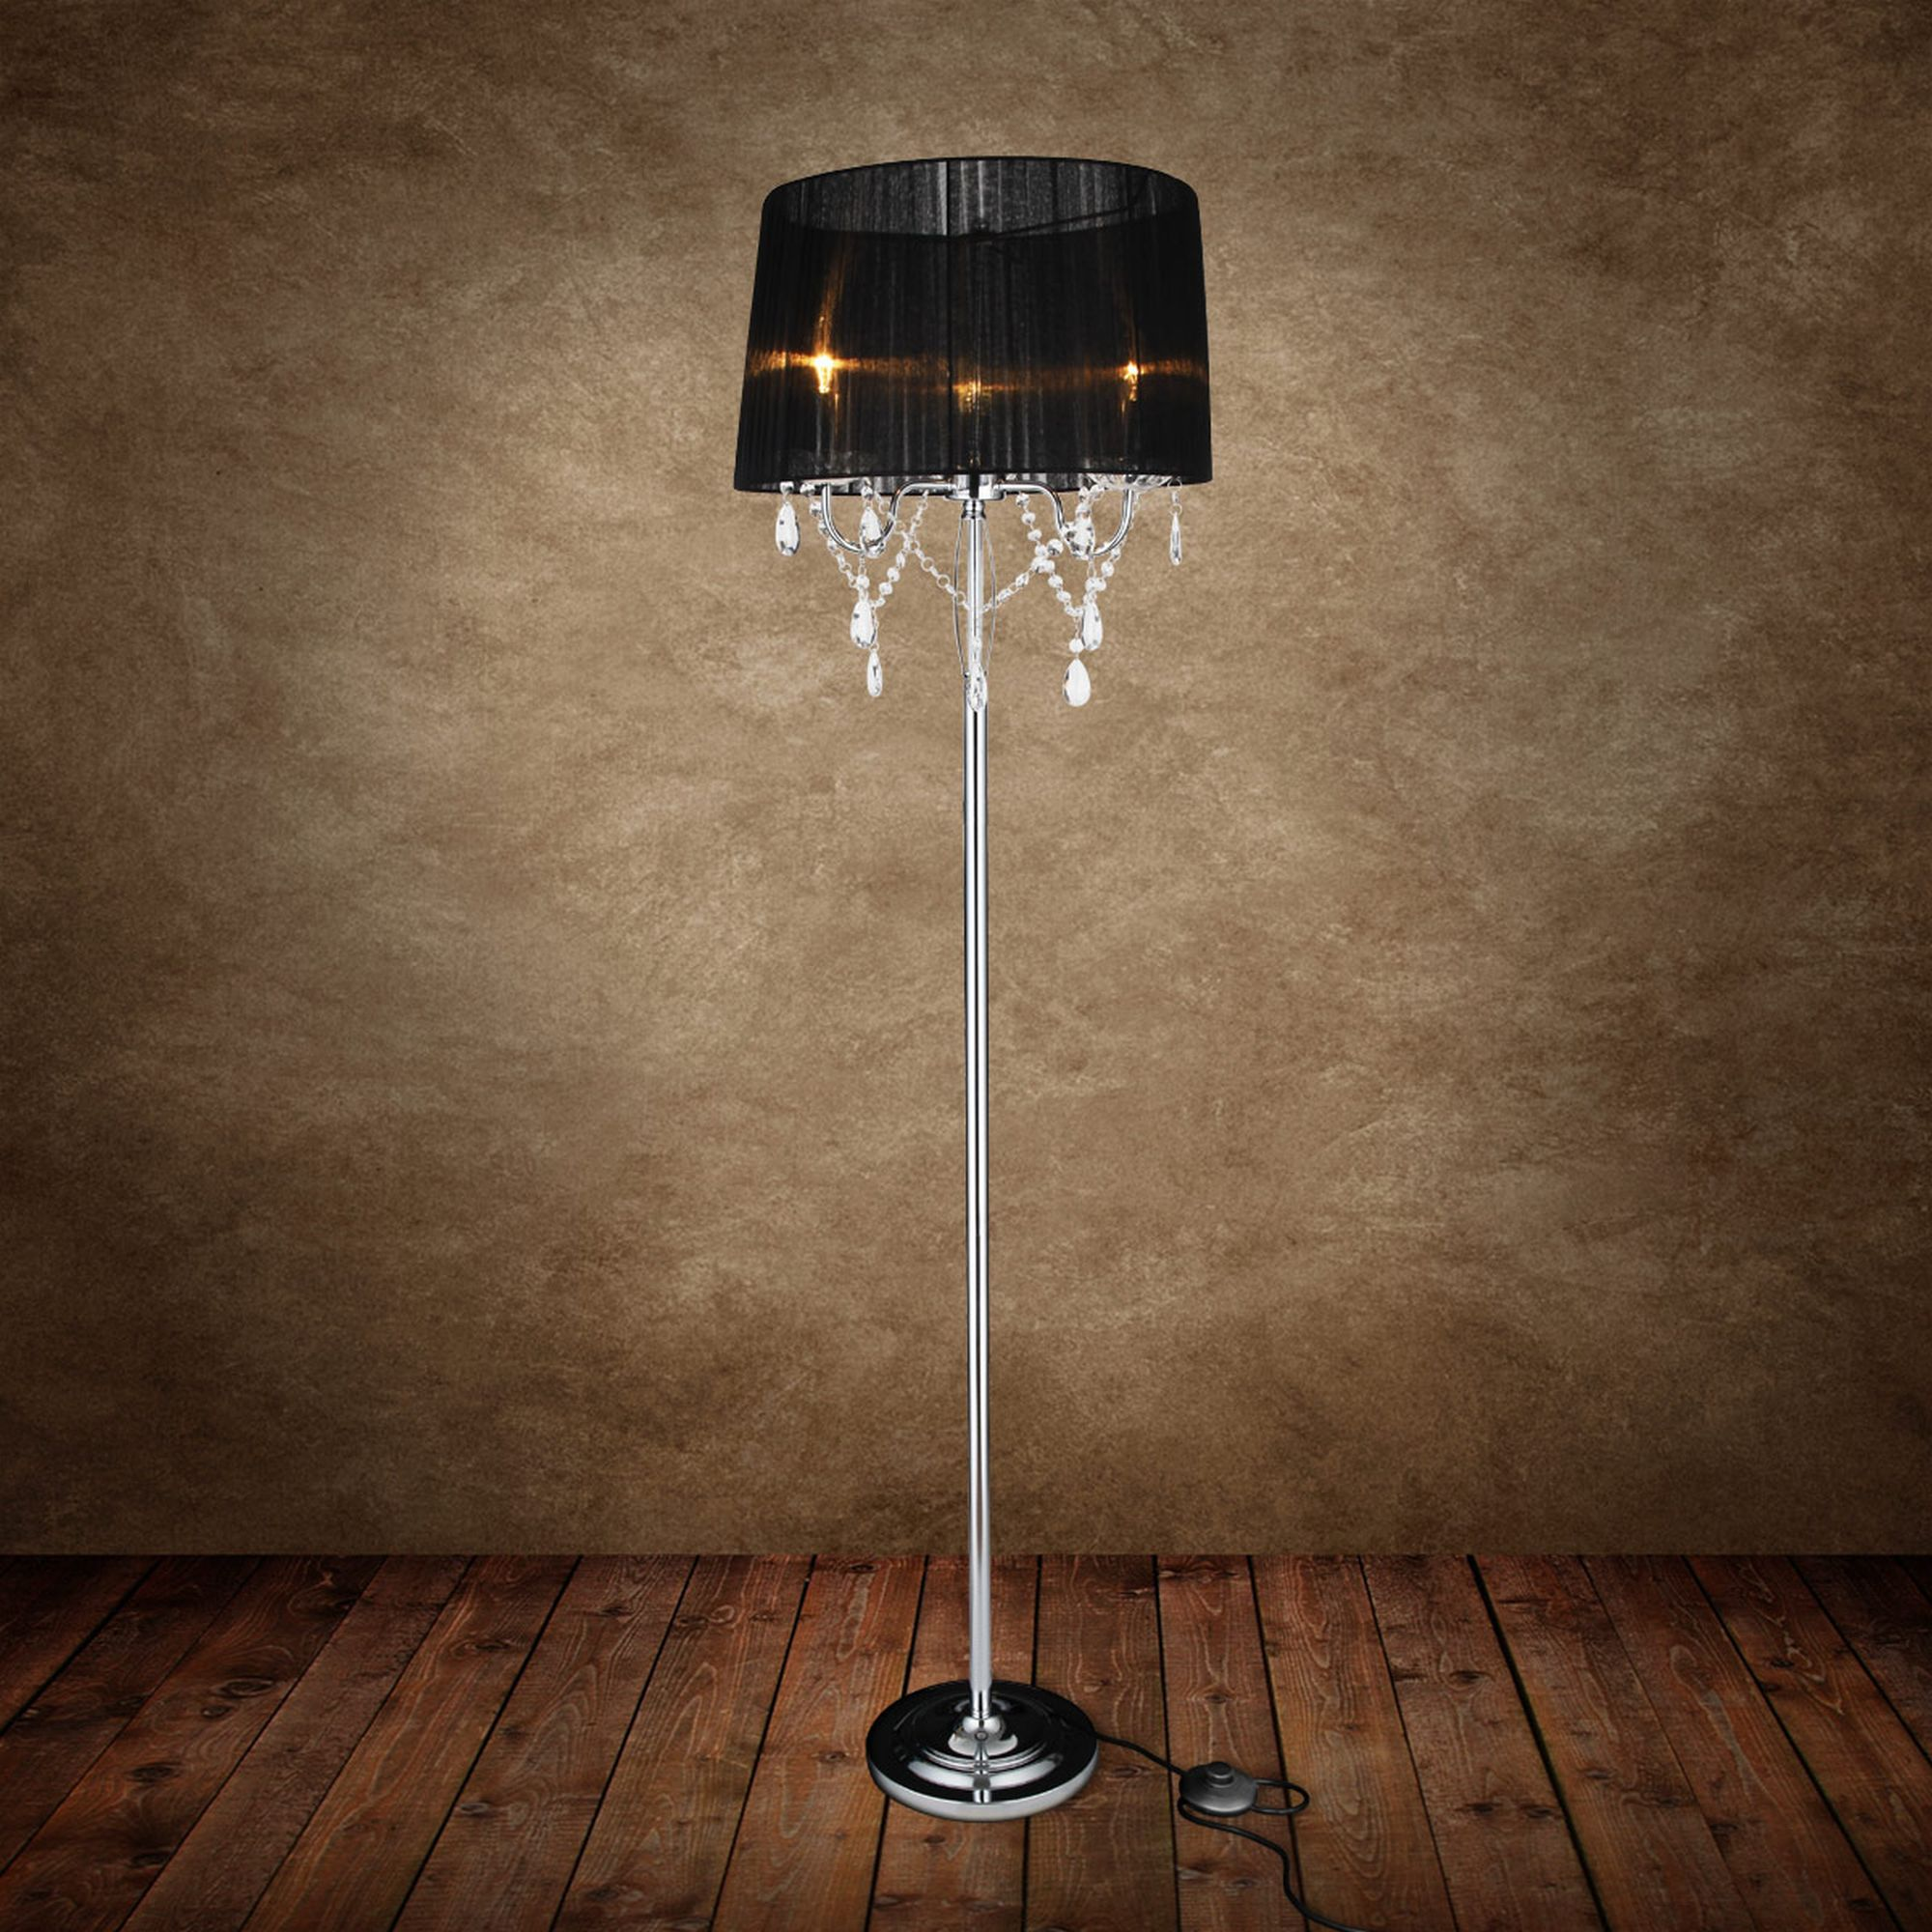 Standard lamp elegant living room lamp with crystal ebay Living room lamp